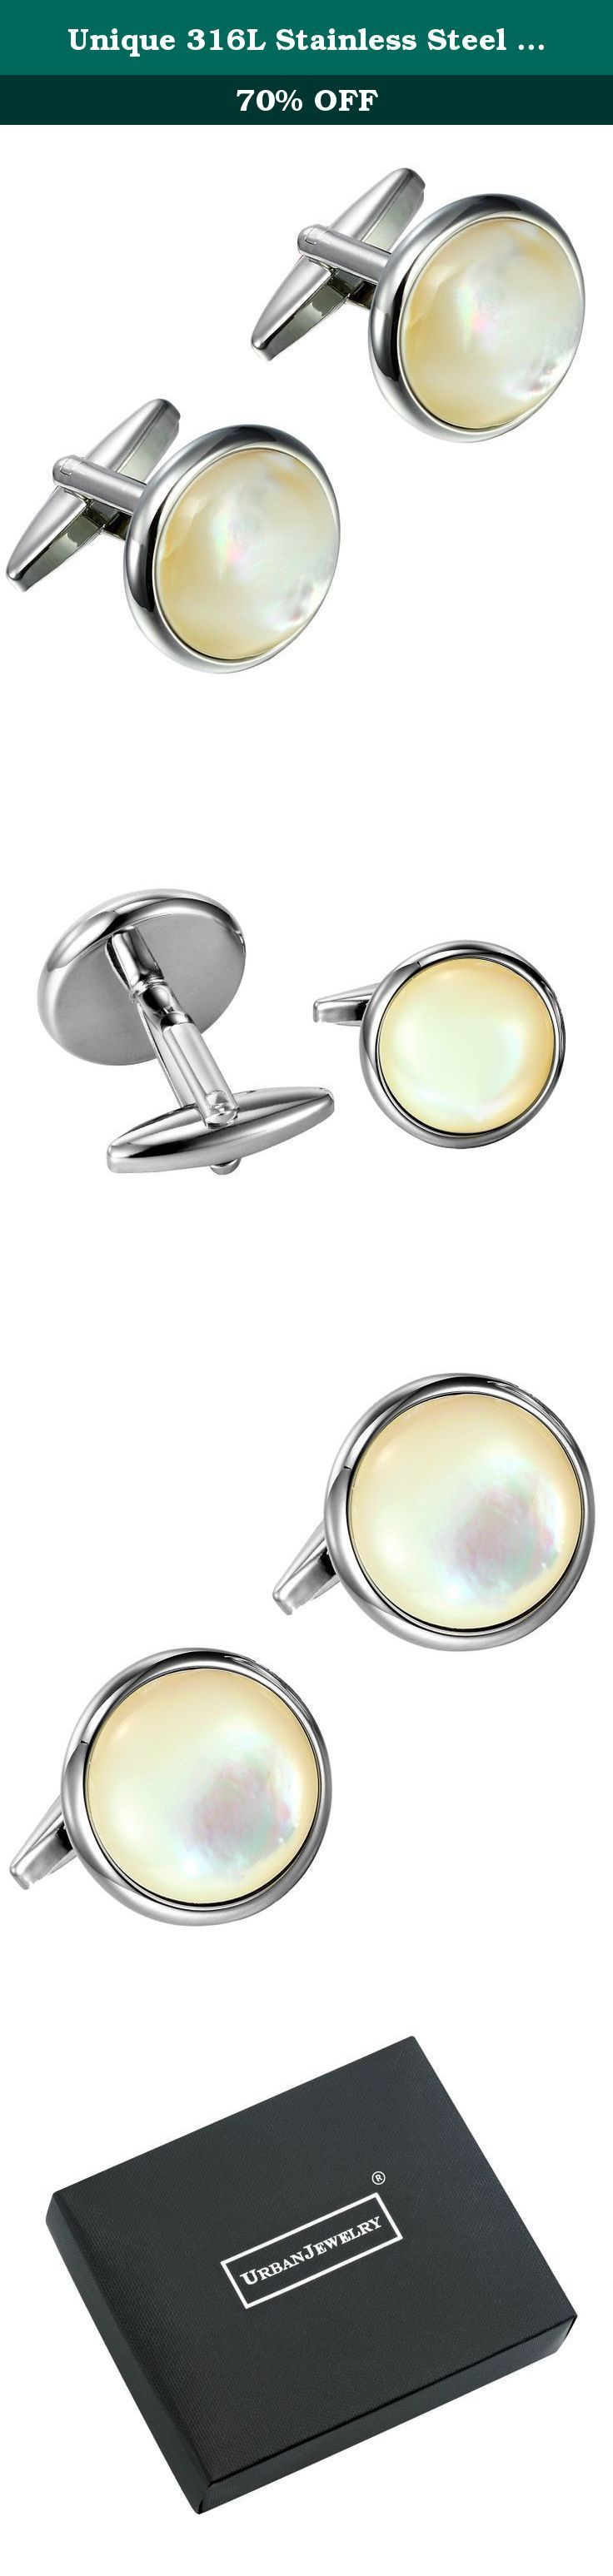 Unique 316L Stainless Steel Men's Round Cufflinks with Real Shell (Silver). Unique 316L Stainless Steel Men's Round Cufflinks with Real Shell (Silver) Why invest in a pair of cufflinks that will only remain in style for a short time? The Urban Jewelry Unique Stainless Steel Men's Round Cufflinks with Real Shell offer a look that is striking but simple enough to always look fashionable, so you'll be able to show them off for years to come. The Urban Jewelry Unique Stainless Steel Men's…